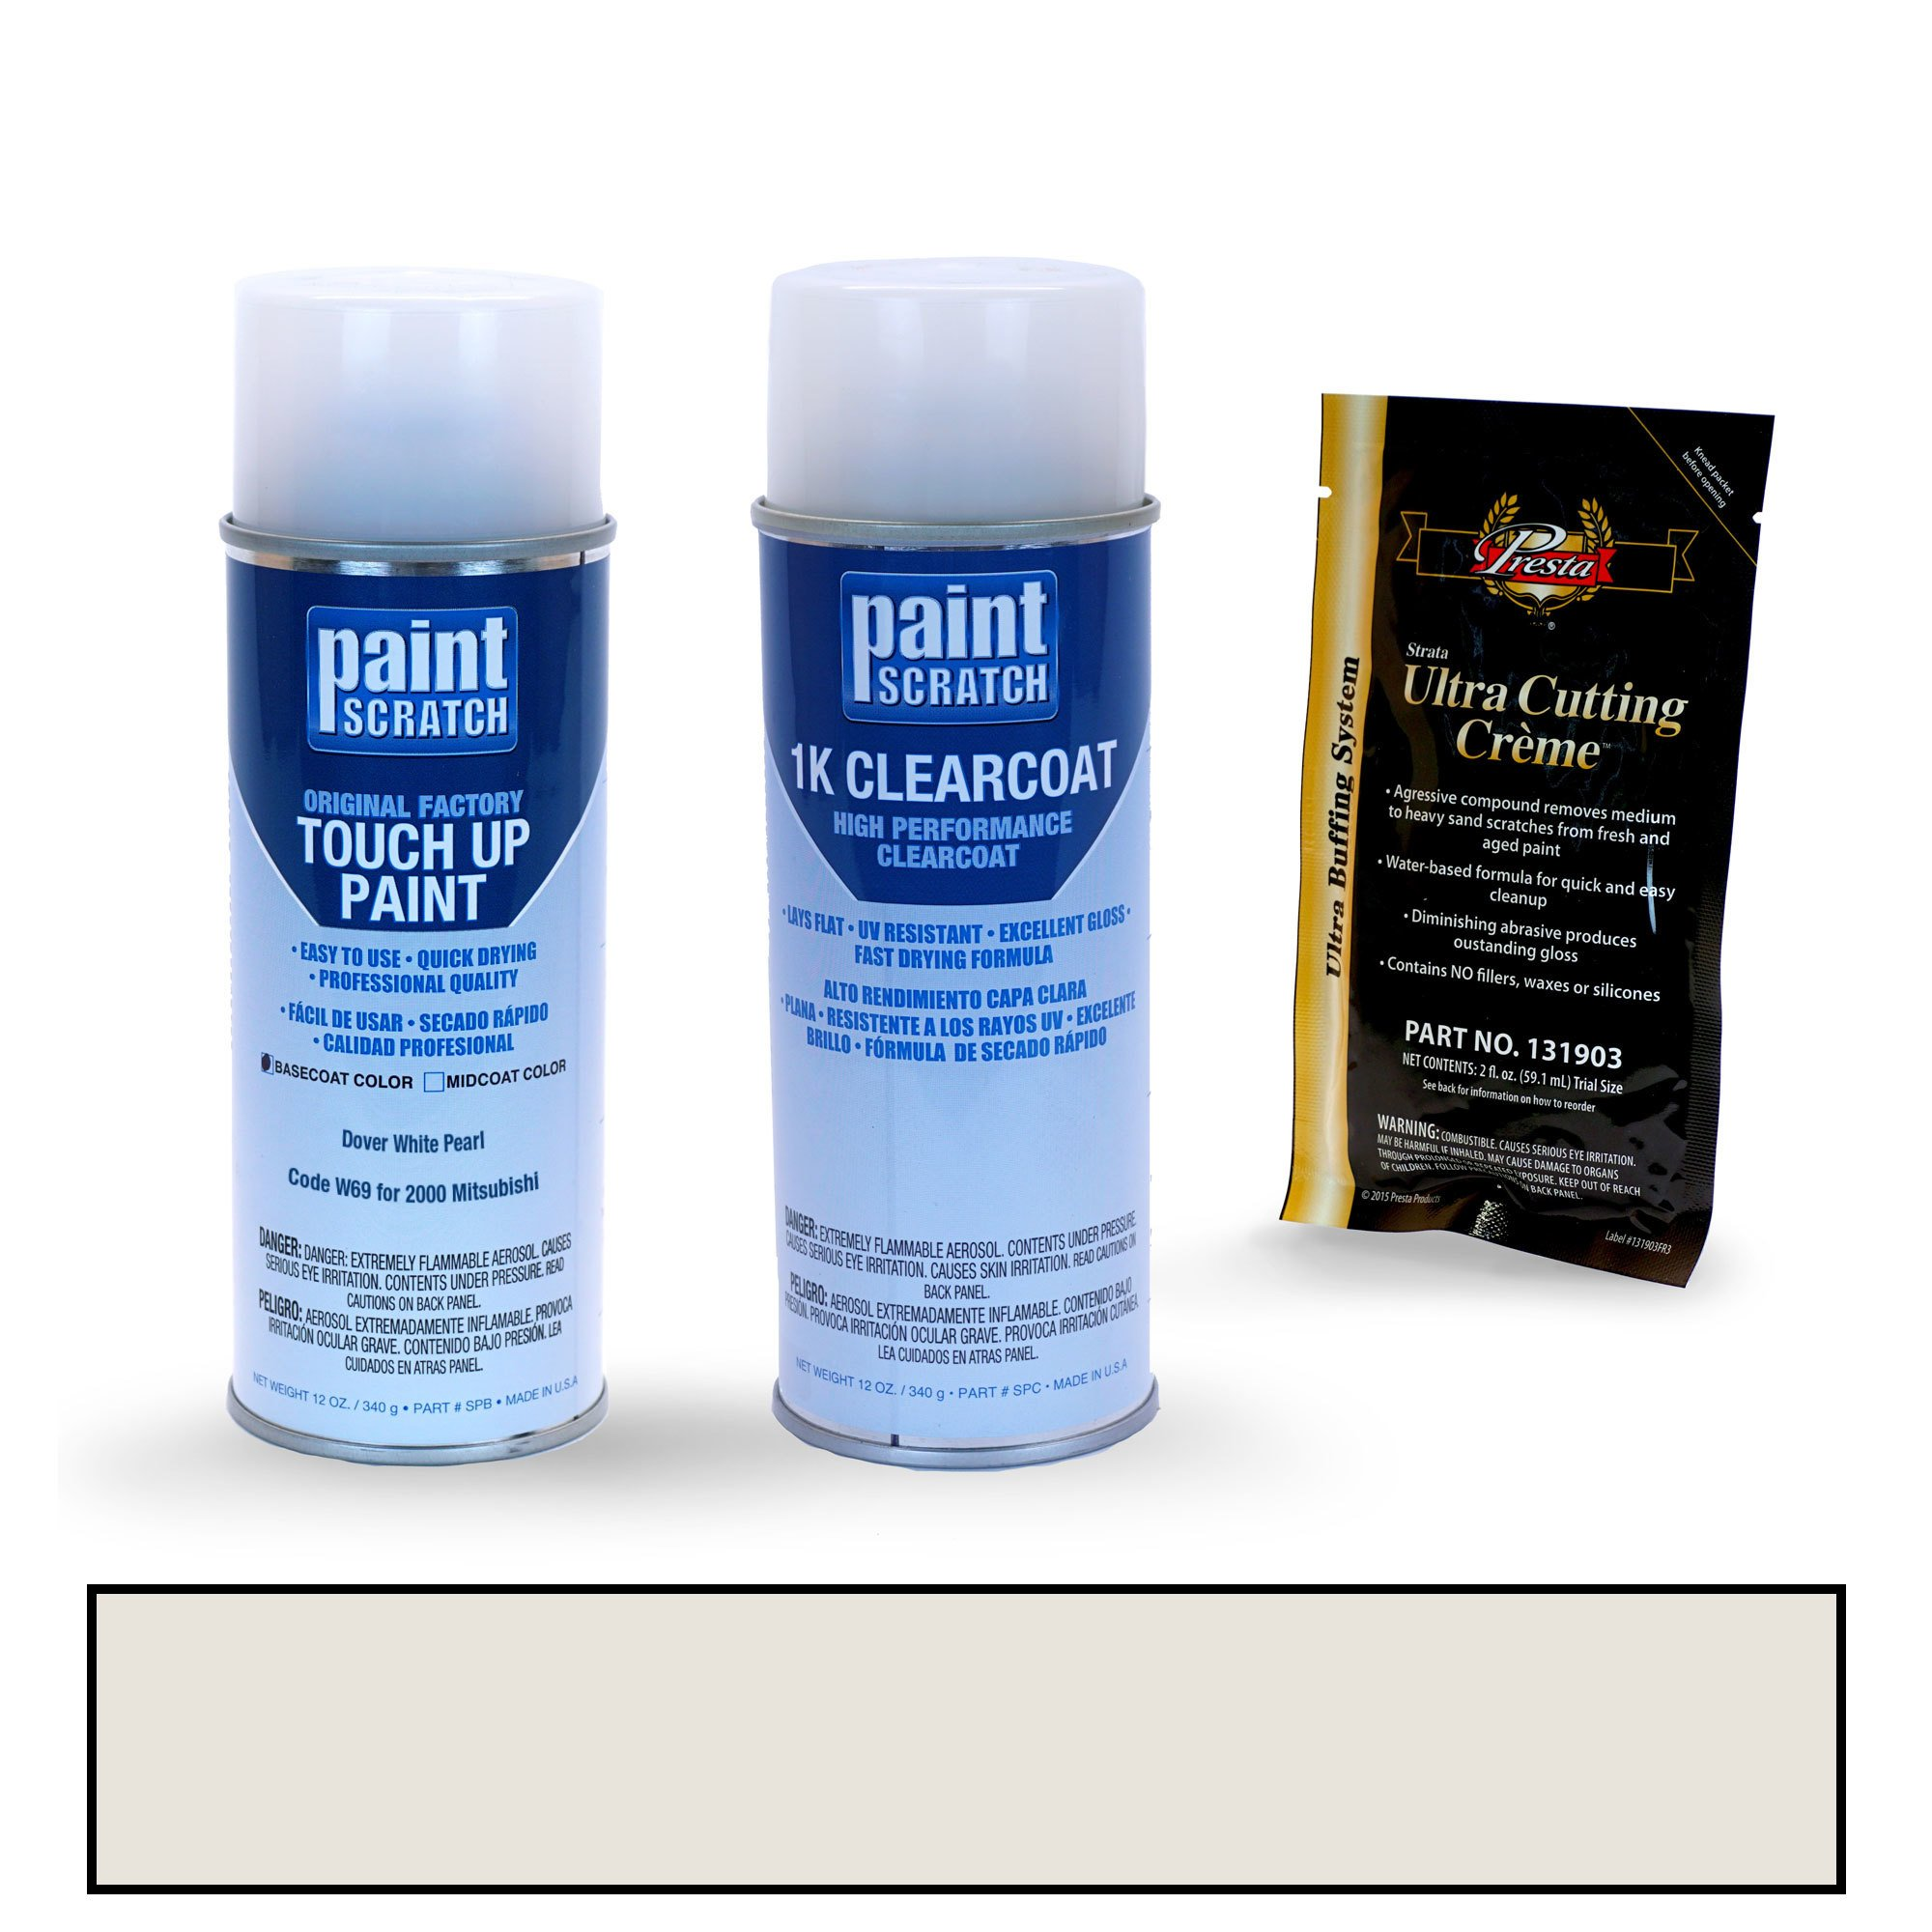 PAINTSCRATCH Dover White Pearl W69 for 2000 Mitsubishi Galant - Touch Up Paint Spray Can Kit - Original Factory OEM Automotive Paint - Color Match Guaranteed